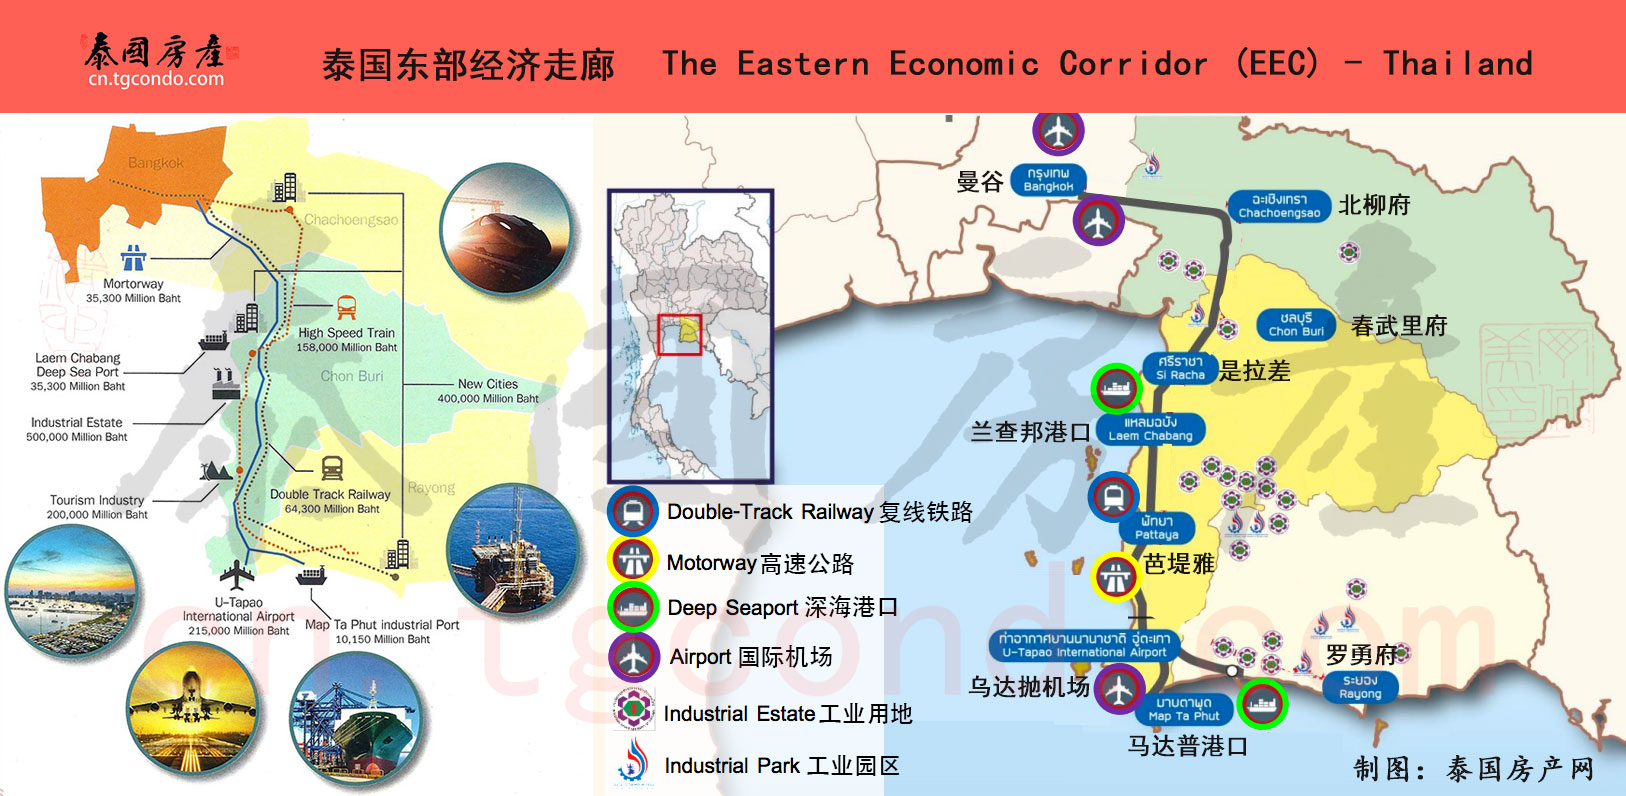 泰国东部经济走廊 Eastern Economic Corridor EEC Thailand